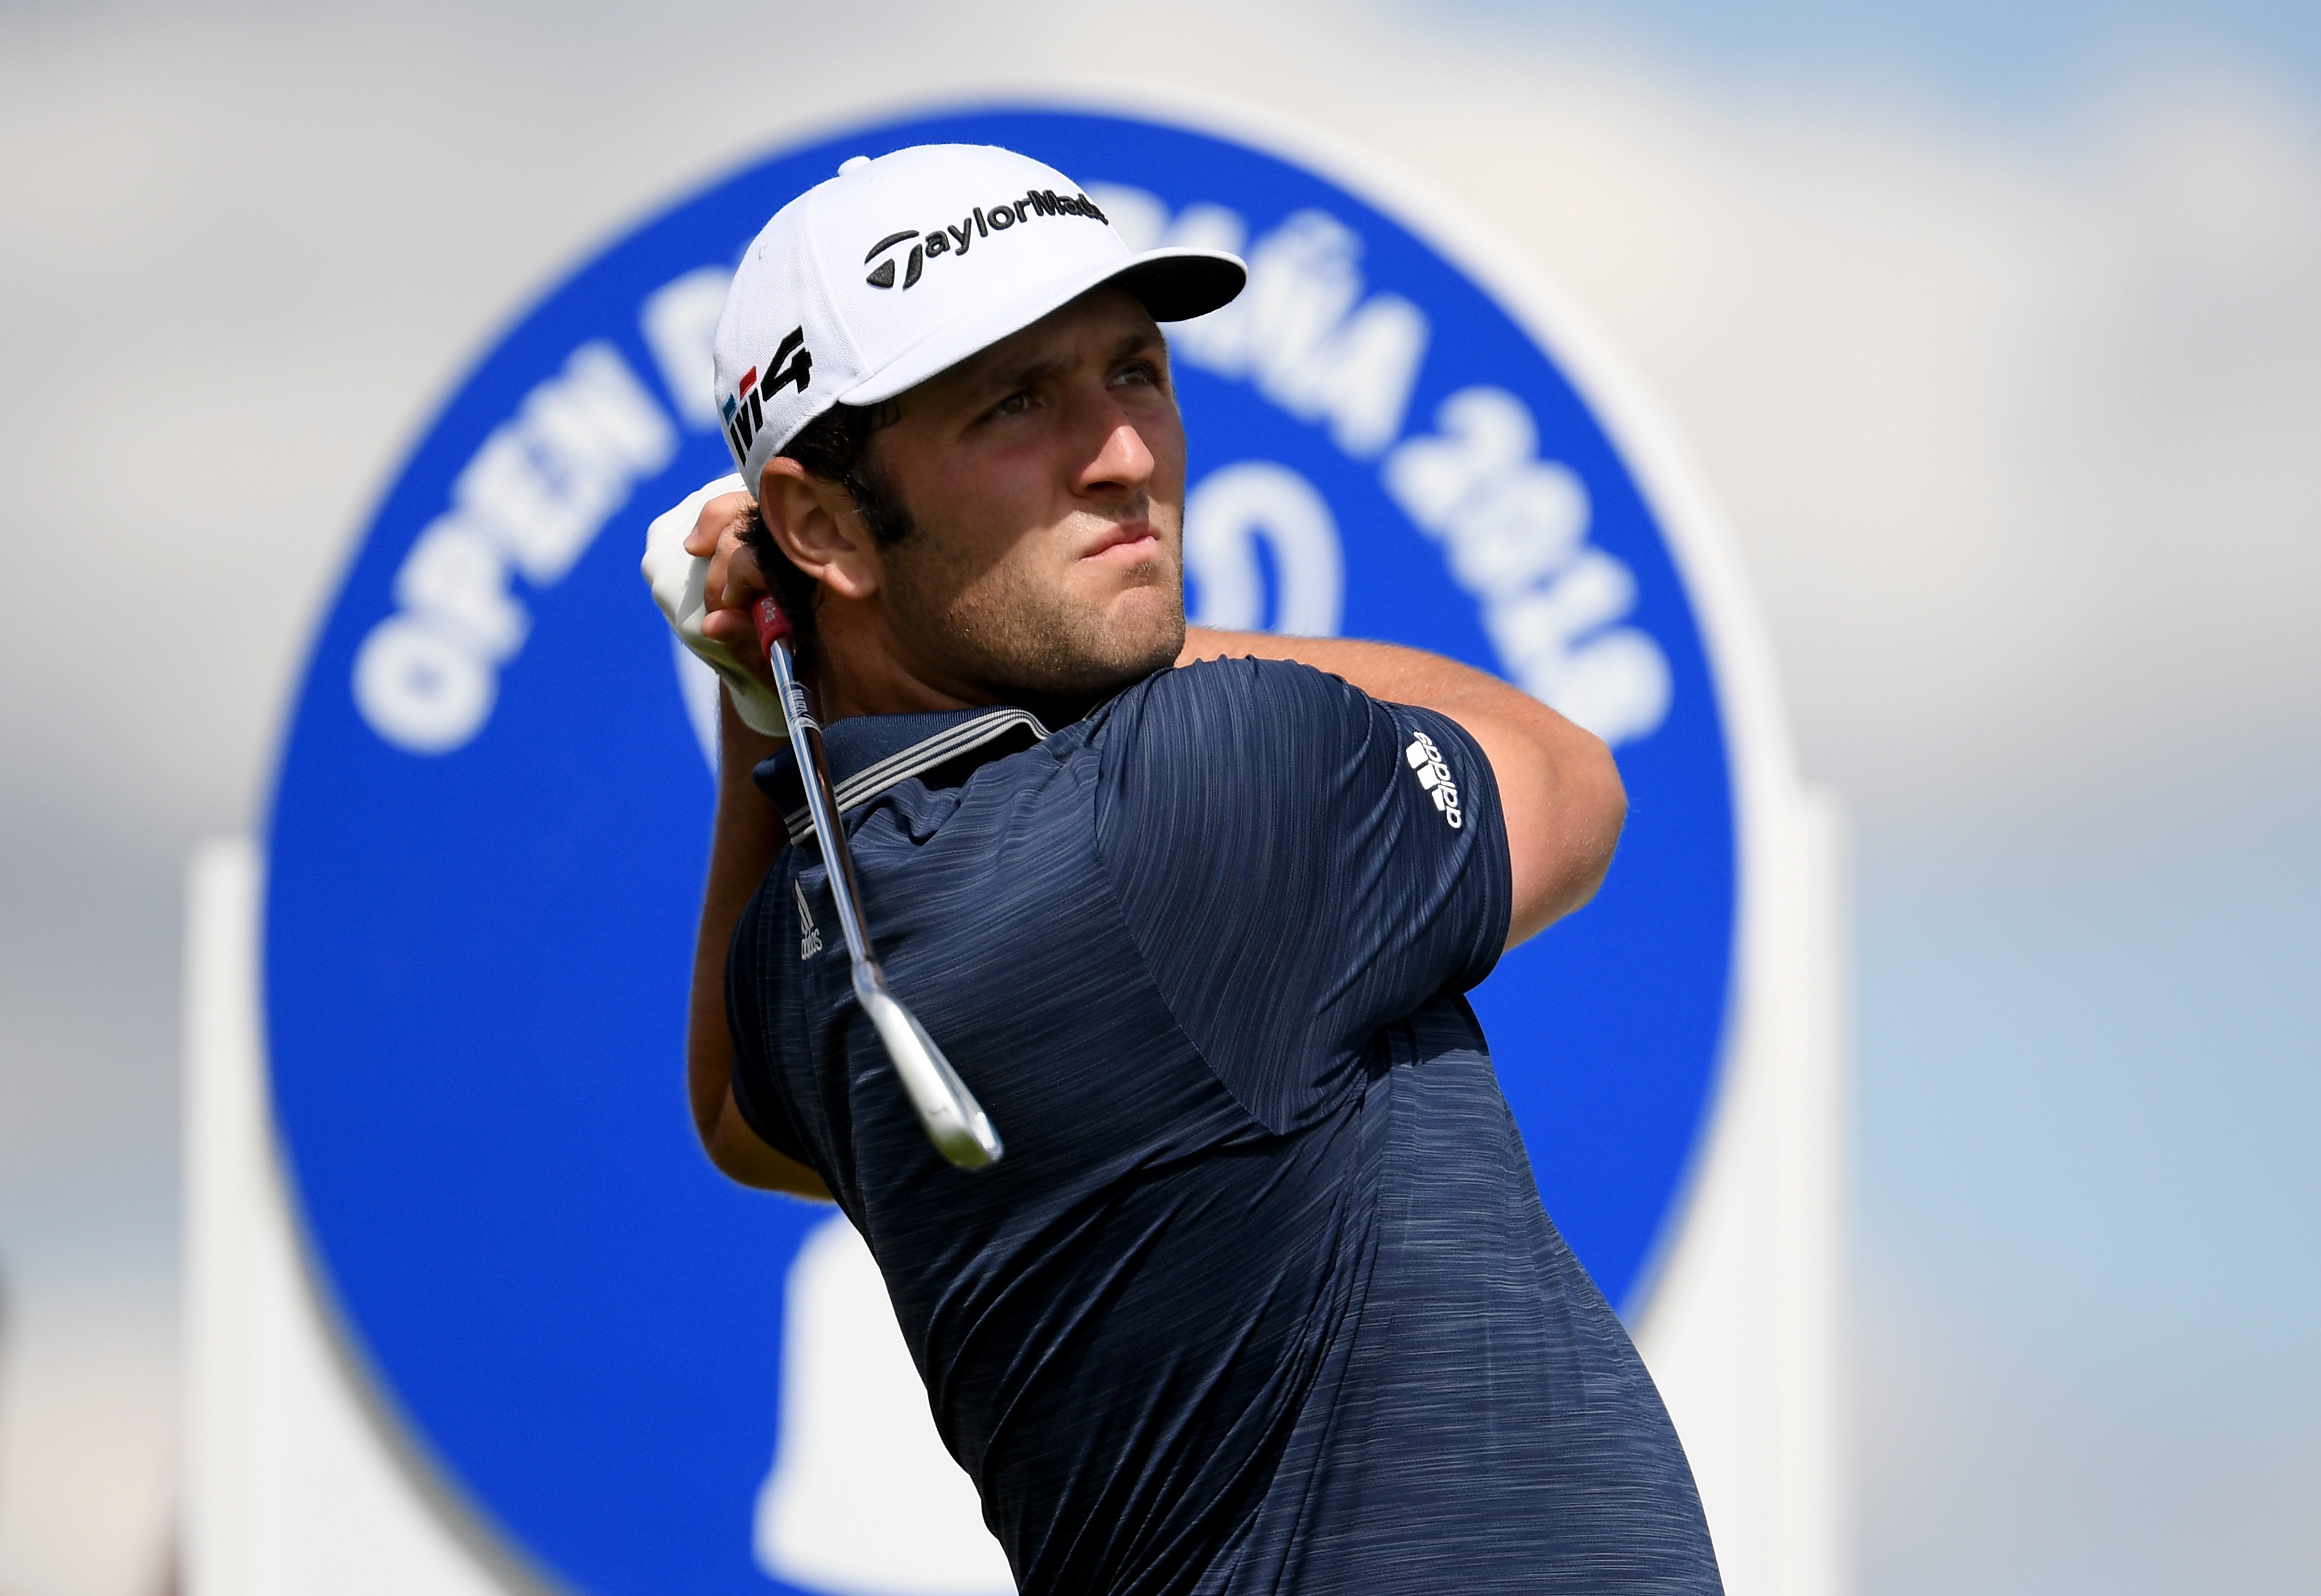 Jon Rahm has taken the golfing world by storm since he turned pro in 2016 He shot himself to the No2 spot in the World Golf Rankings within just 2 years of turning pro